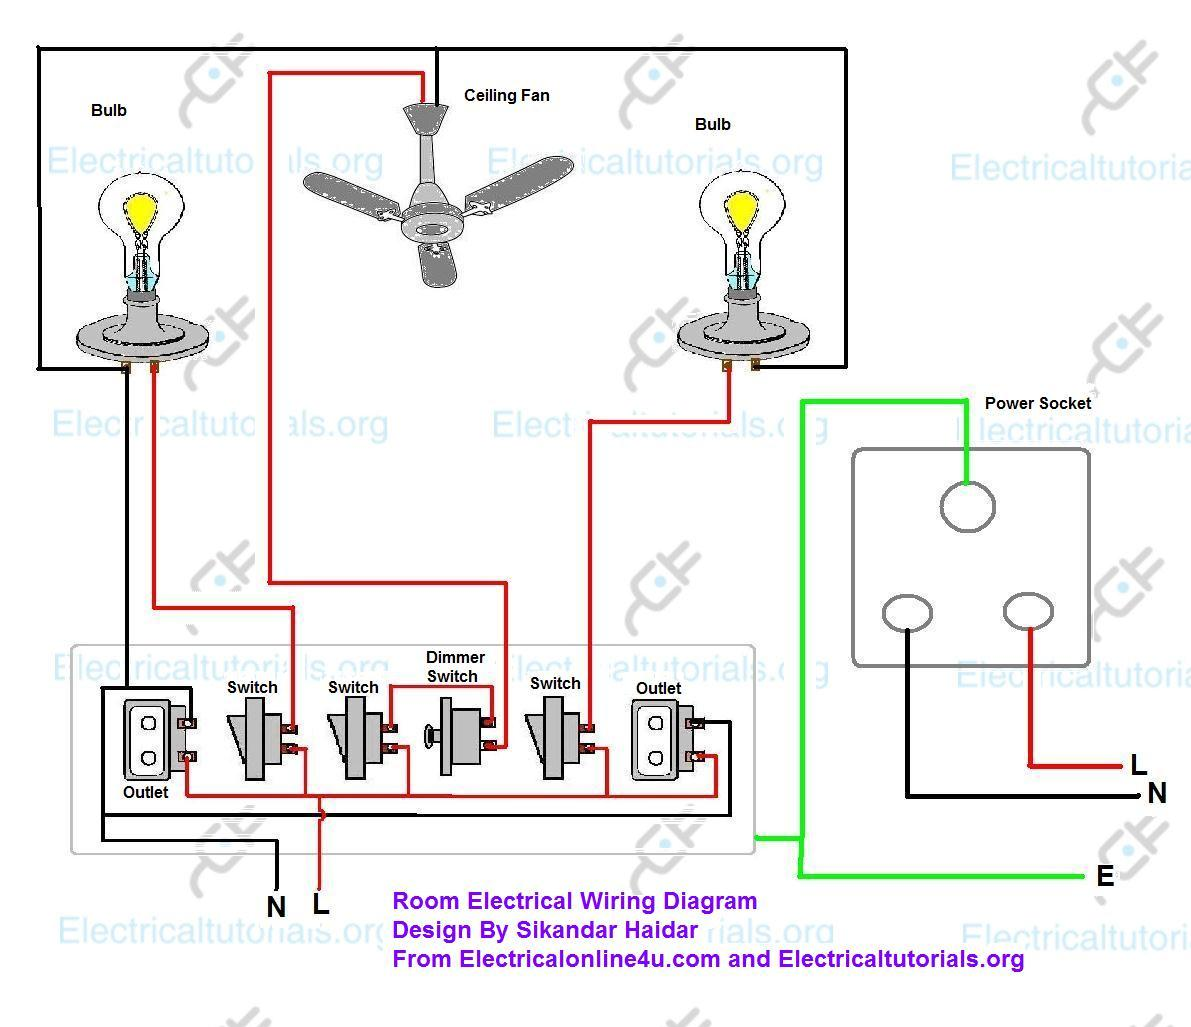 wiring%2Ba%2Broom house wiring video in hindi readingrat net electrical outlet wiring diagram video at readyjetset.co